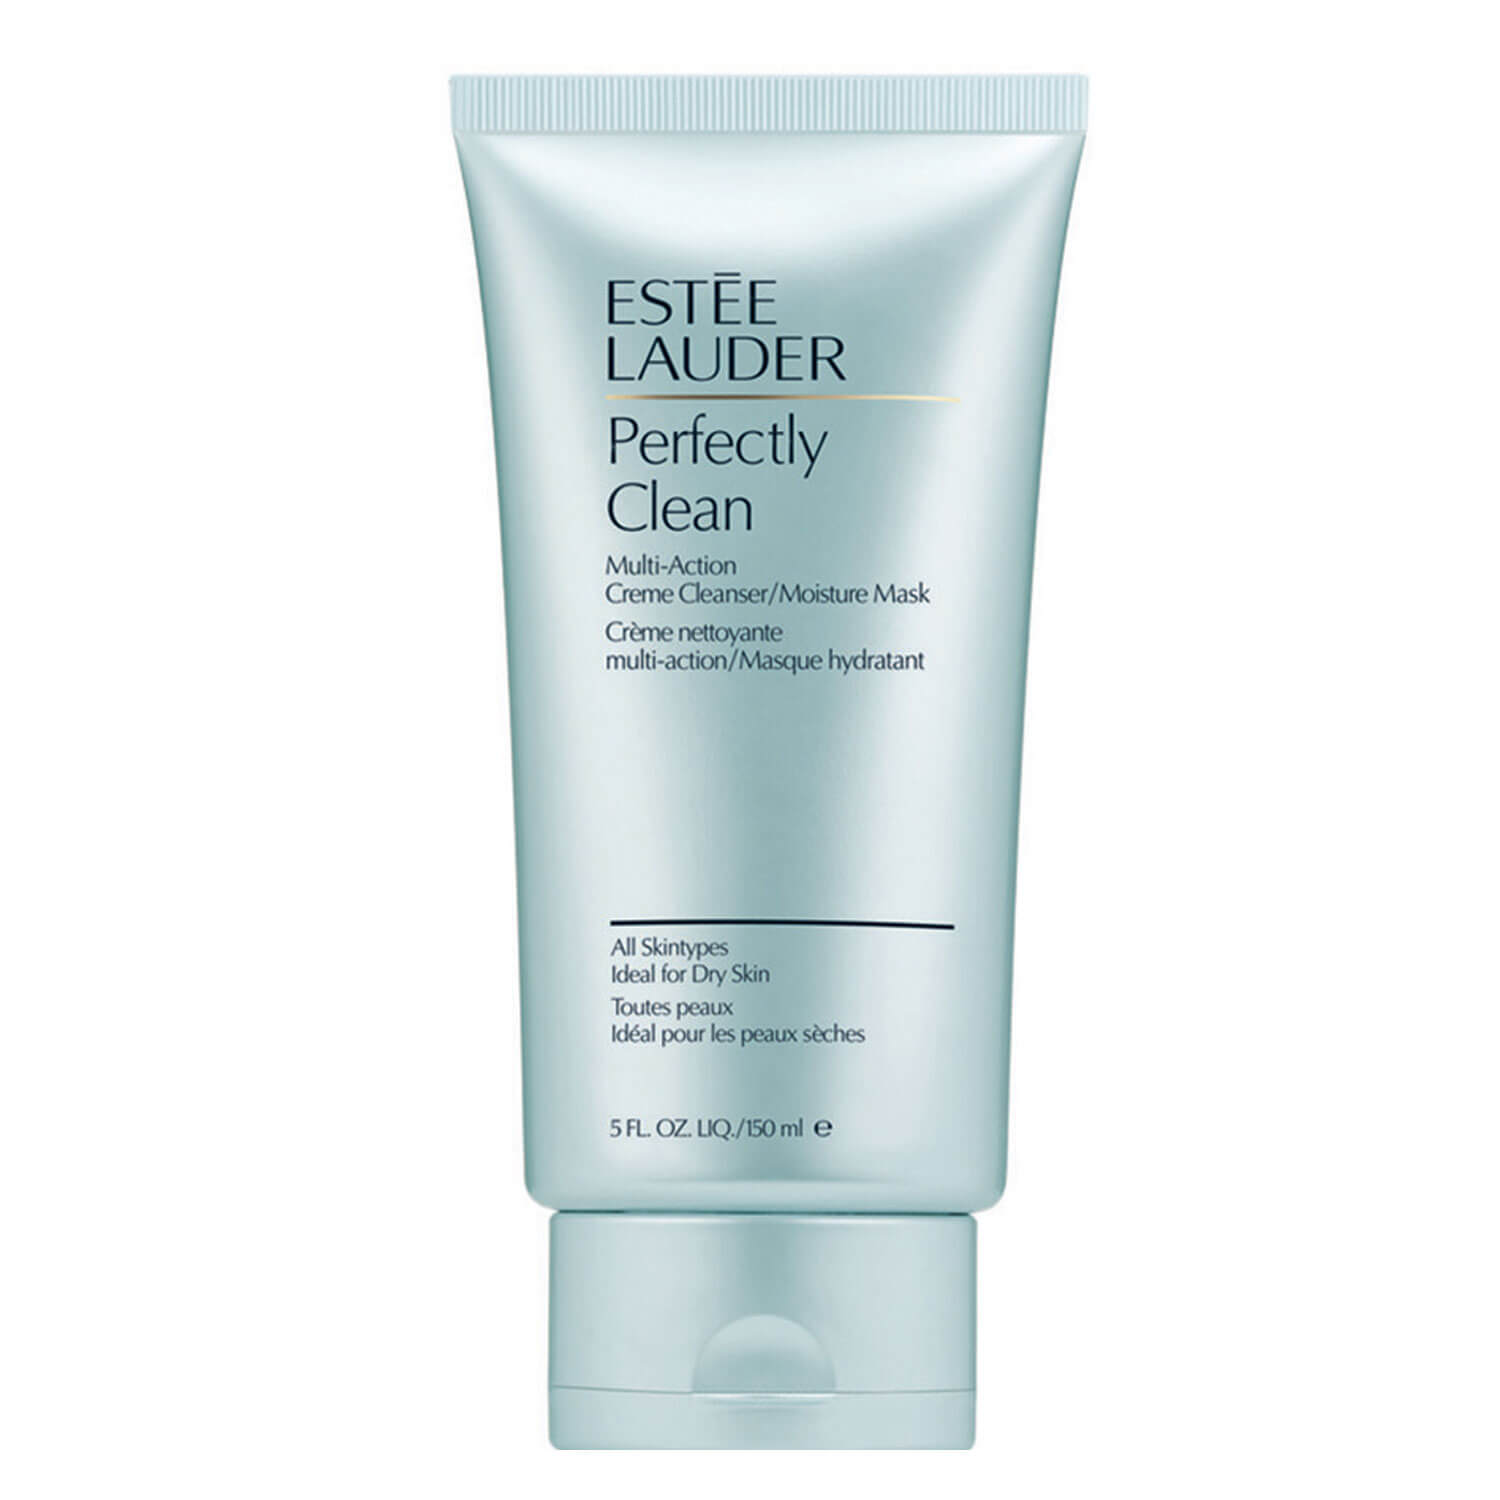 Perfectly Clean - Multi-Action Creme Cleanser/Moisture Mask